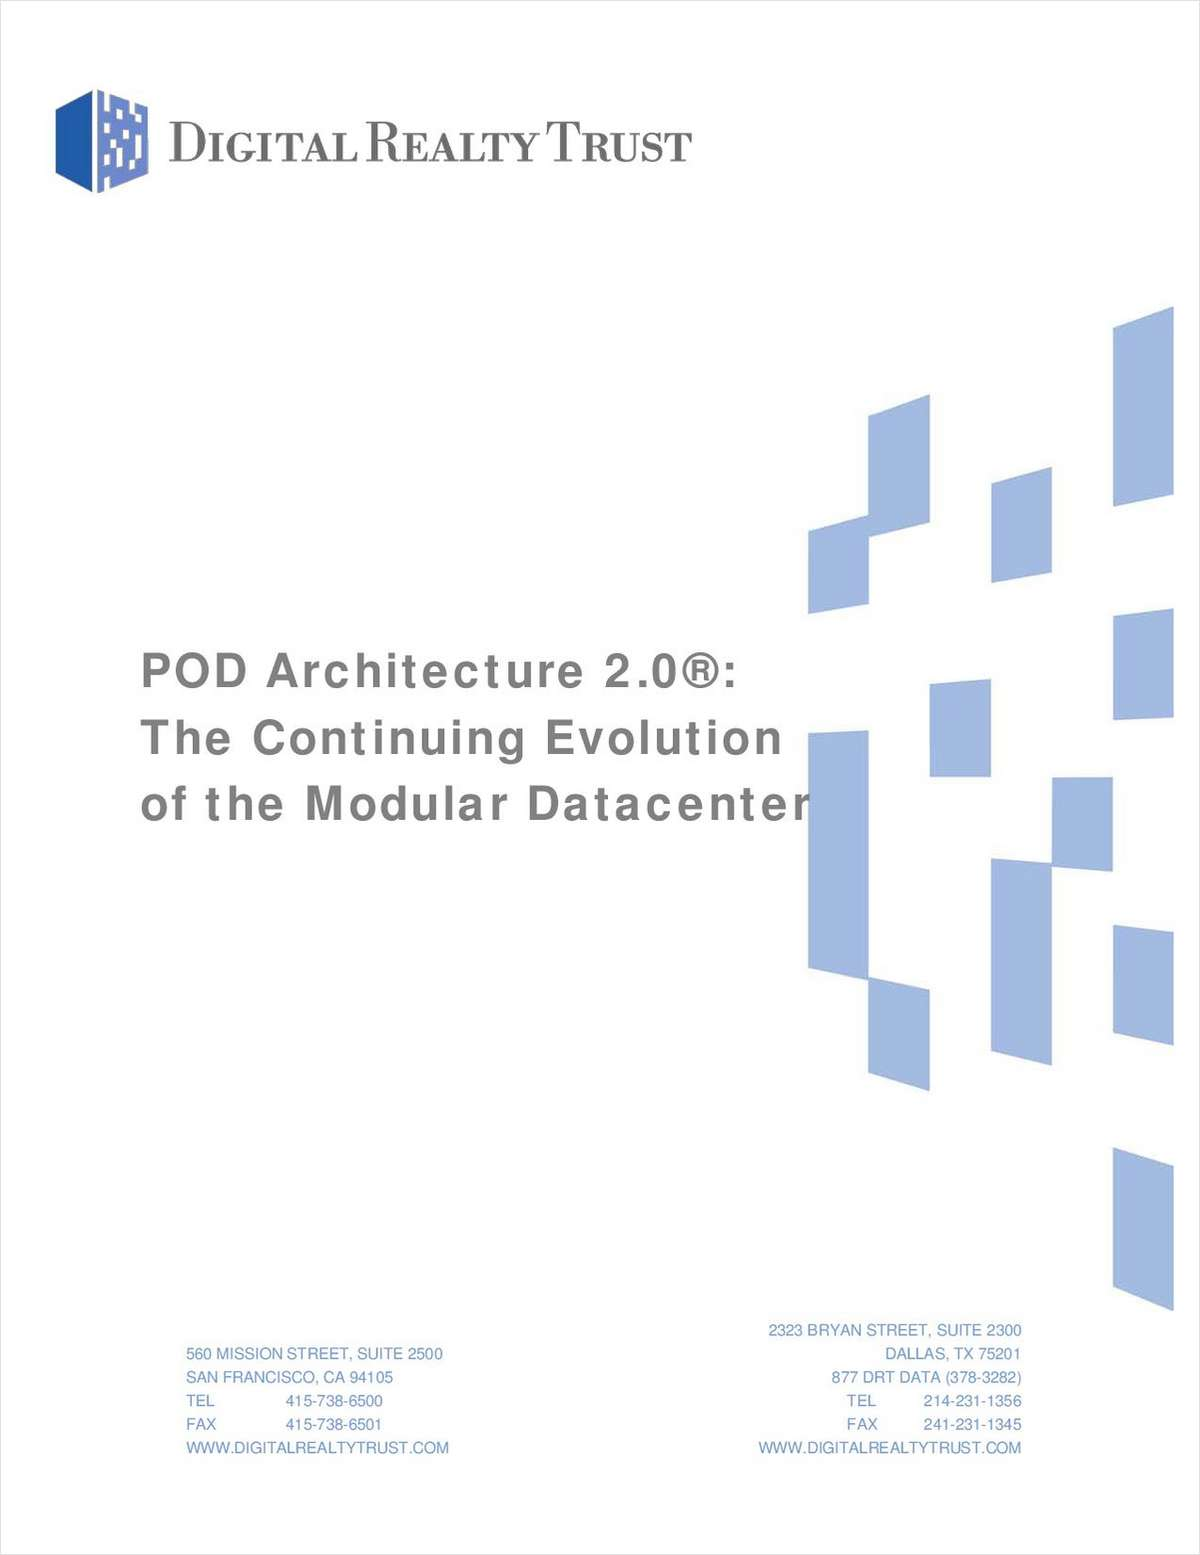 POD Architecture 2.0®: The Continuing Evolution of the Modular Data Center